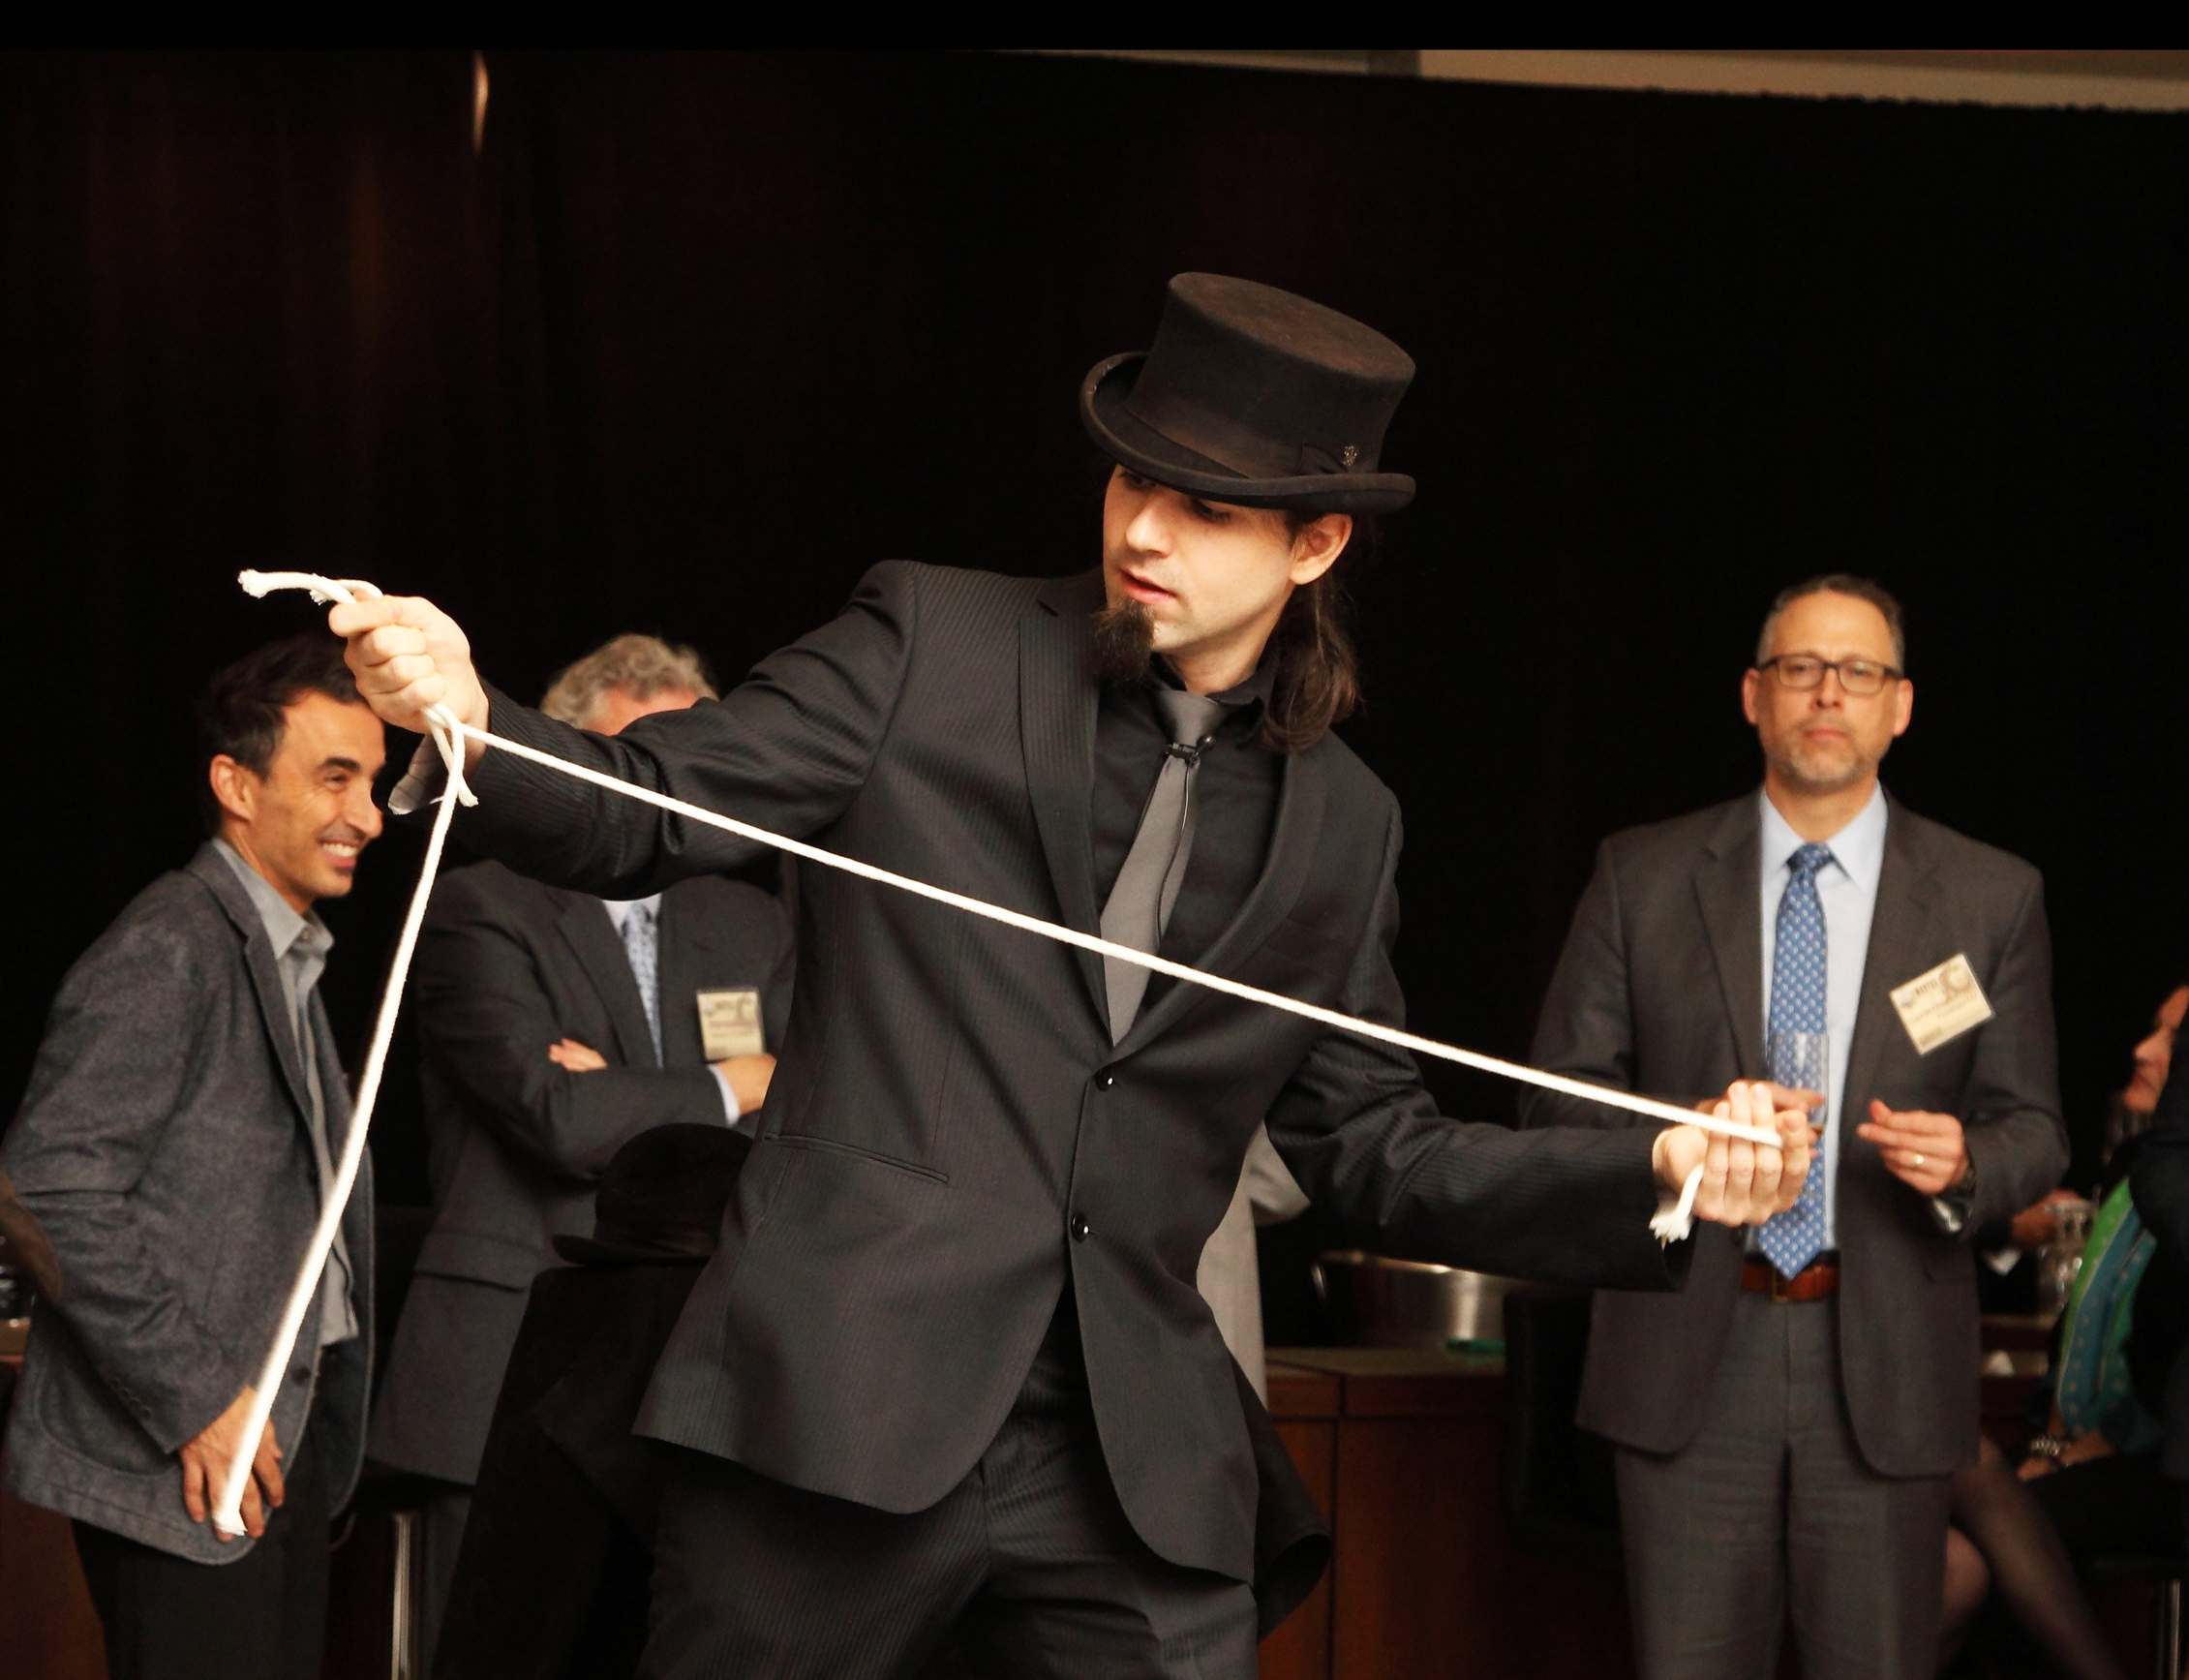 Spencer Scurr Performs His Rope Magic Routine at A Stage Show for a Company Event